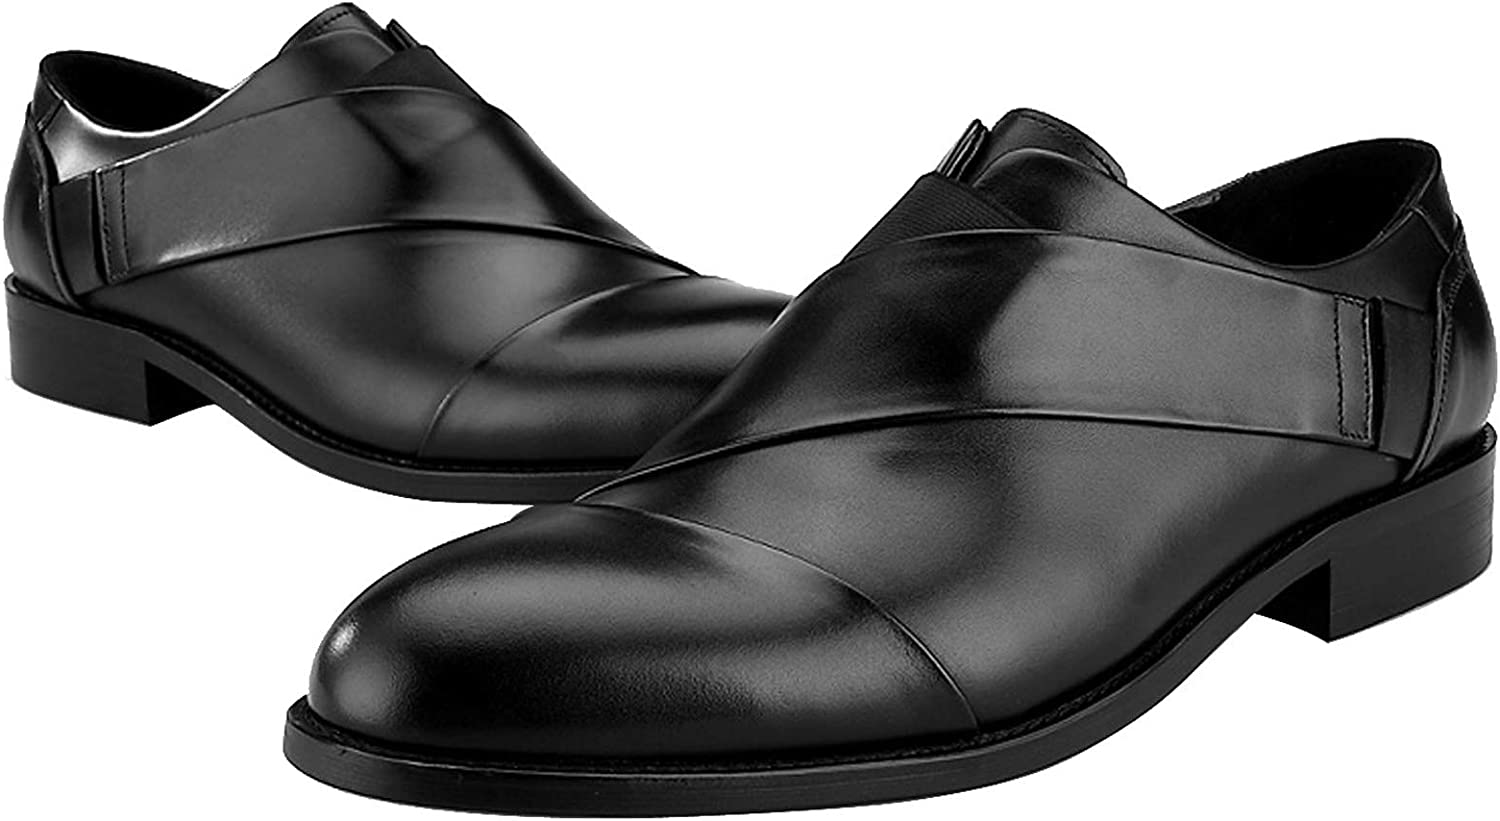 BONGZUO Feet Comfortable Oxford shoes, Pointed Leather Trend Personality Personality British Design Hair Stylist Men Leather shoes, YMXP9-T6